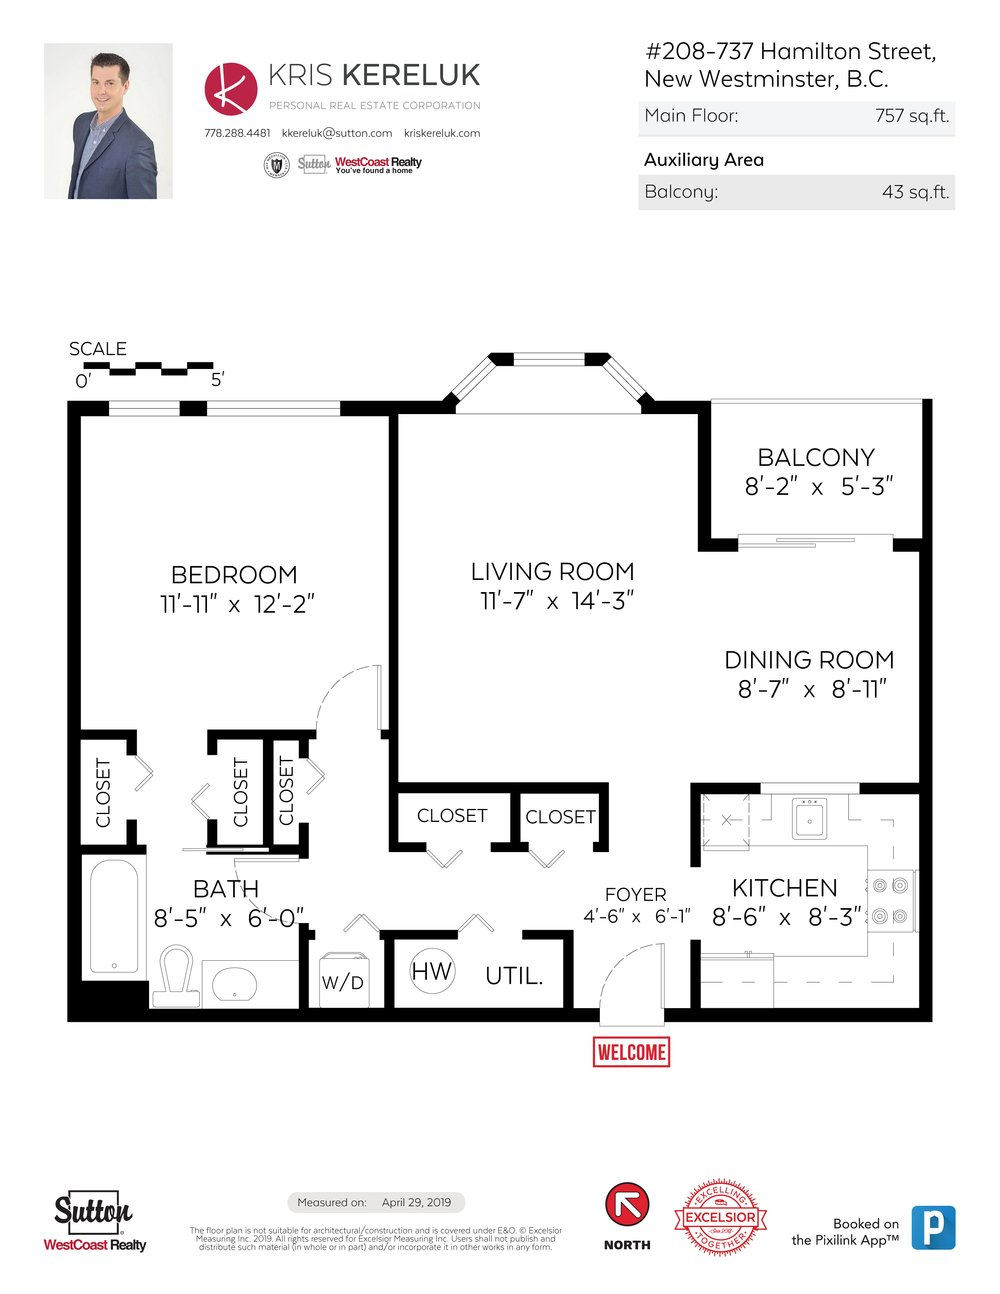 Floor Plan for a 1 Bedroom Apartment in